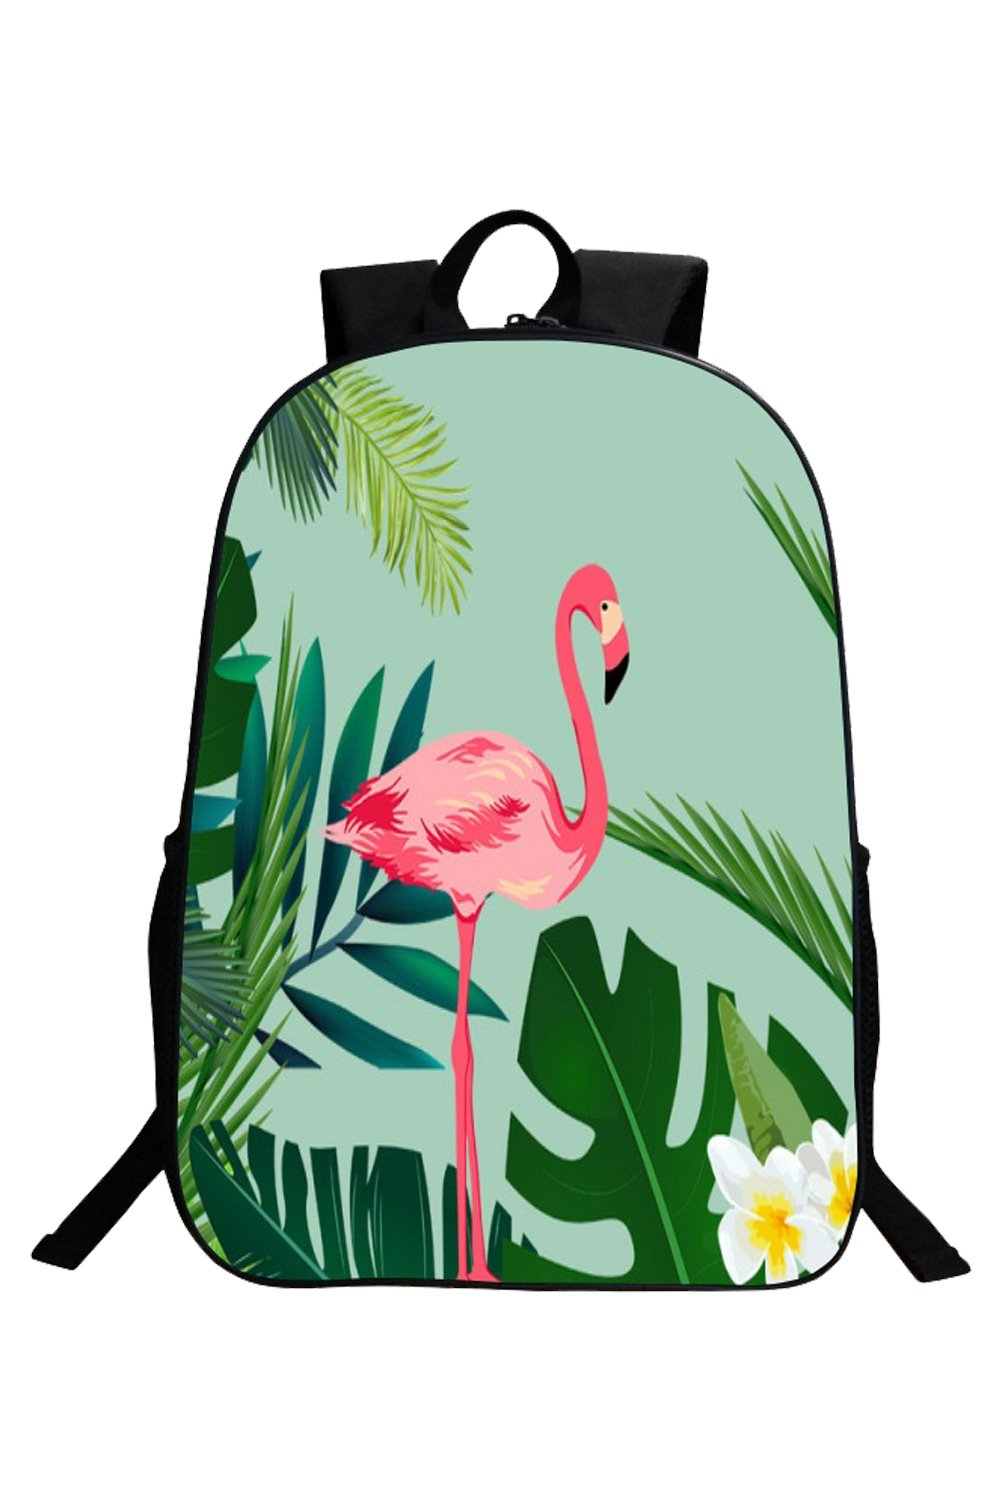 Flamingo Palm Tree Casual Backpack Travel Daypack School Bag,Style2